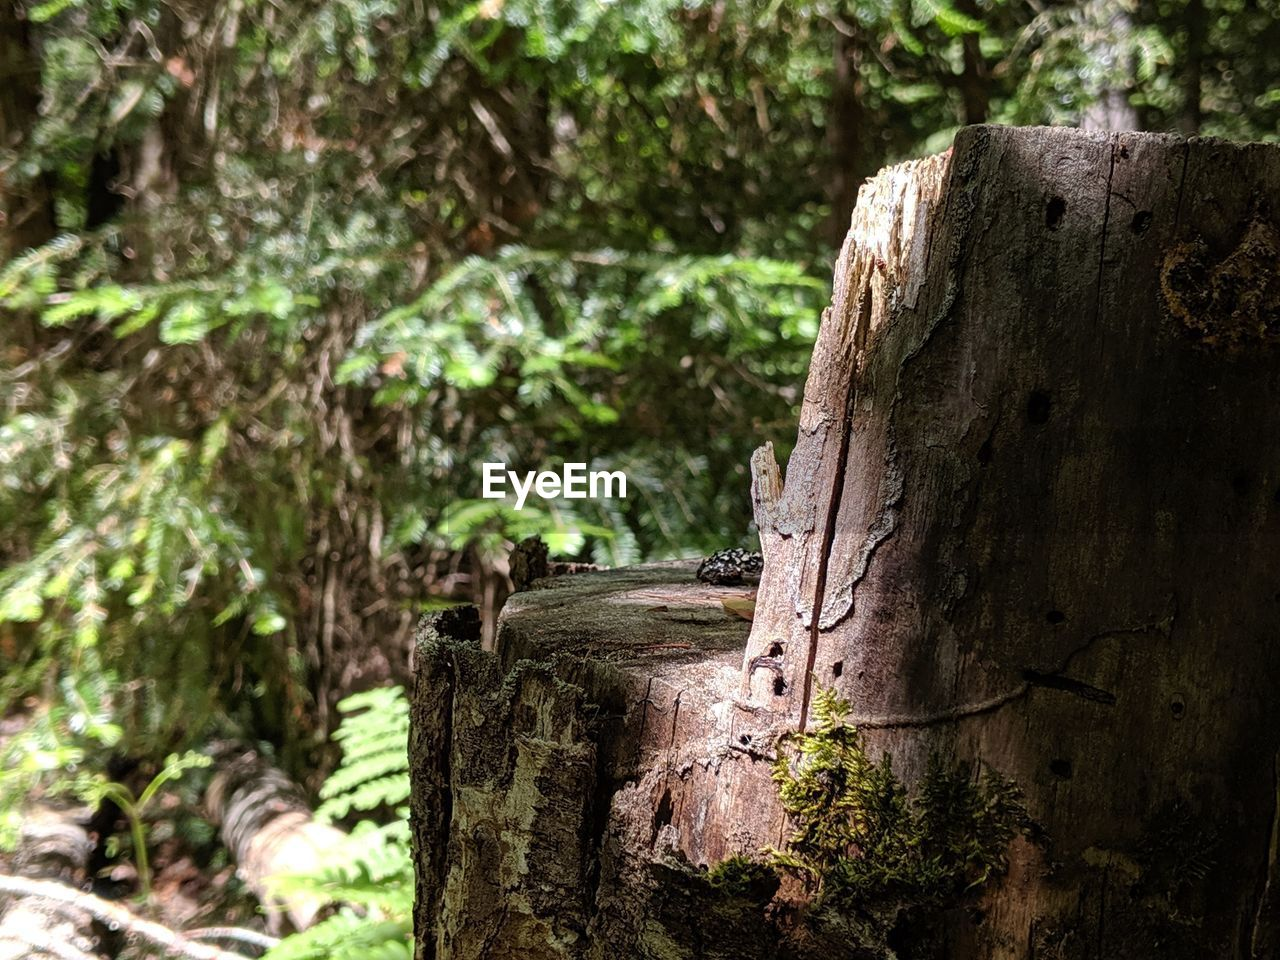 tree, focus on foreground, wood - material, plant, nature, tree trunk, bark, day, textured, trunk, no people, growth, close-up, forest, rough, outdoors, selective focus, wood, plant bark, log